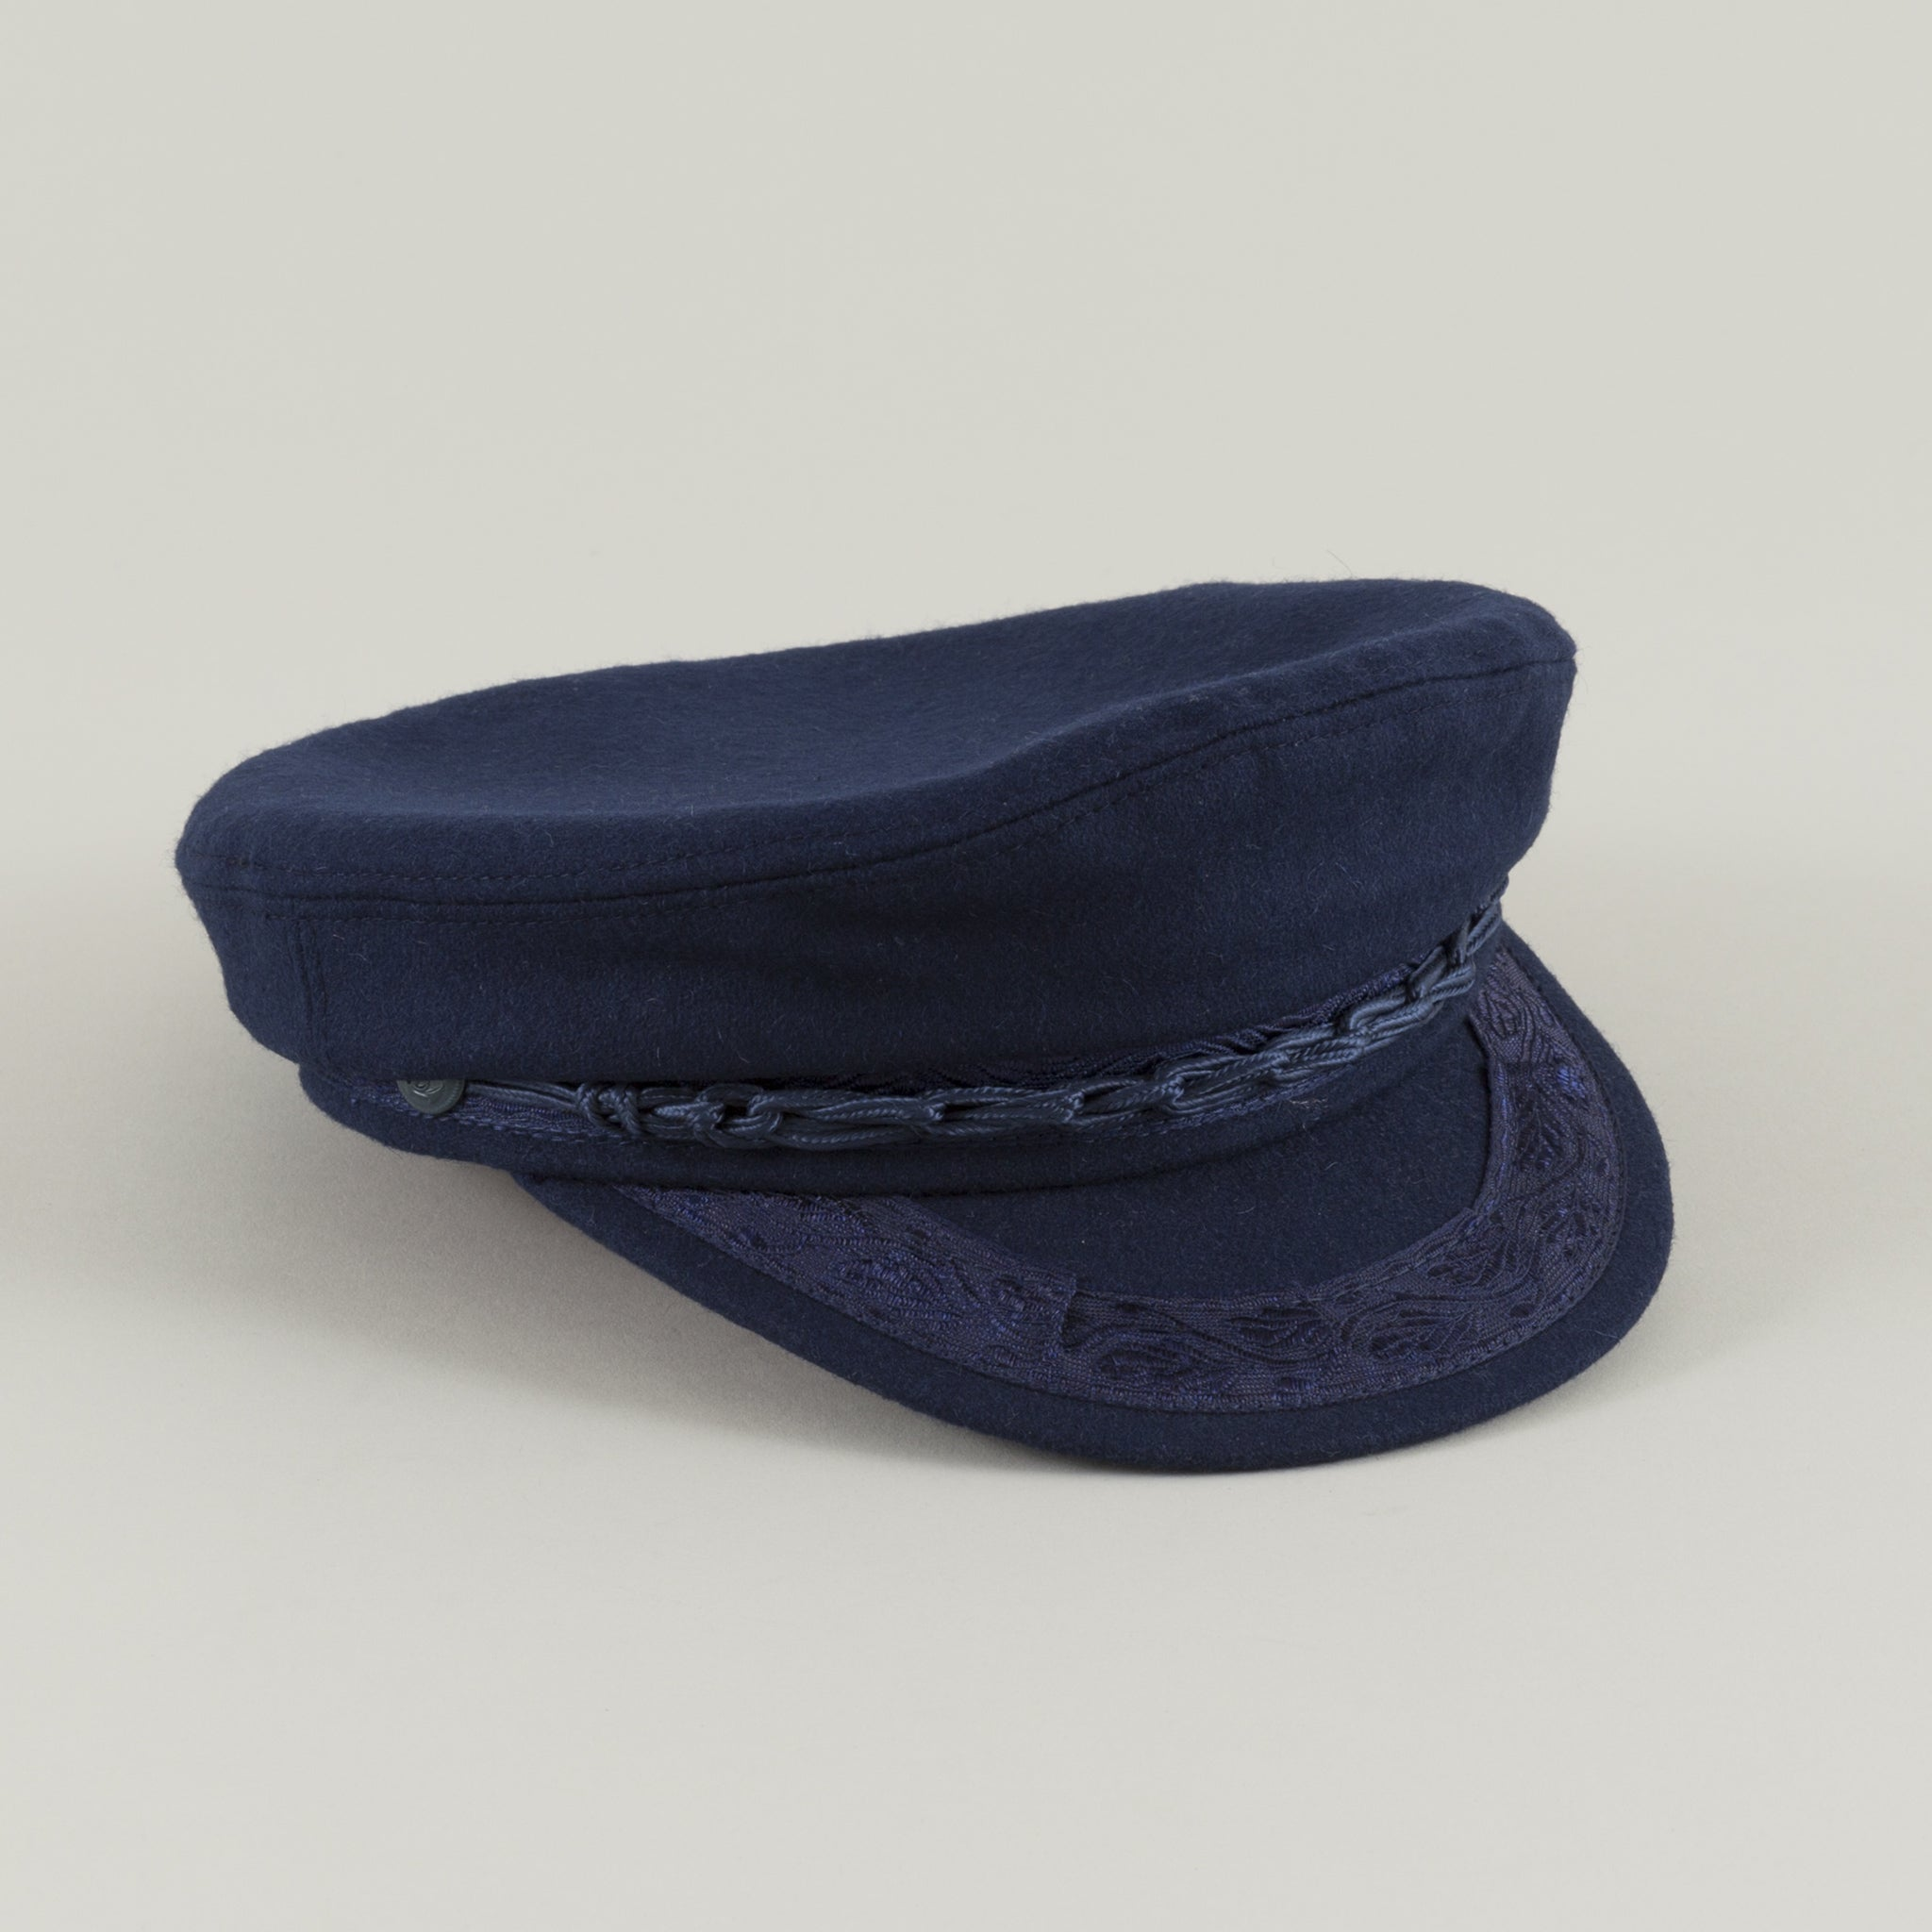 06e4f348 Greek Fisherman's Cap, Blue - The Stronghold